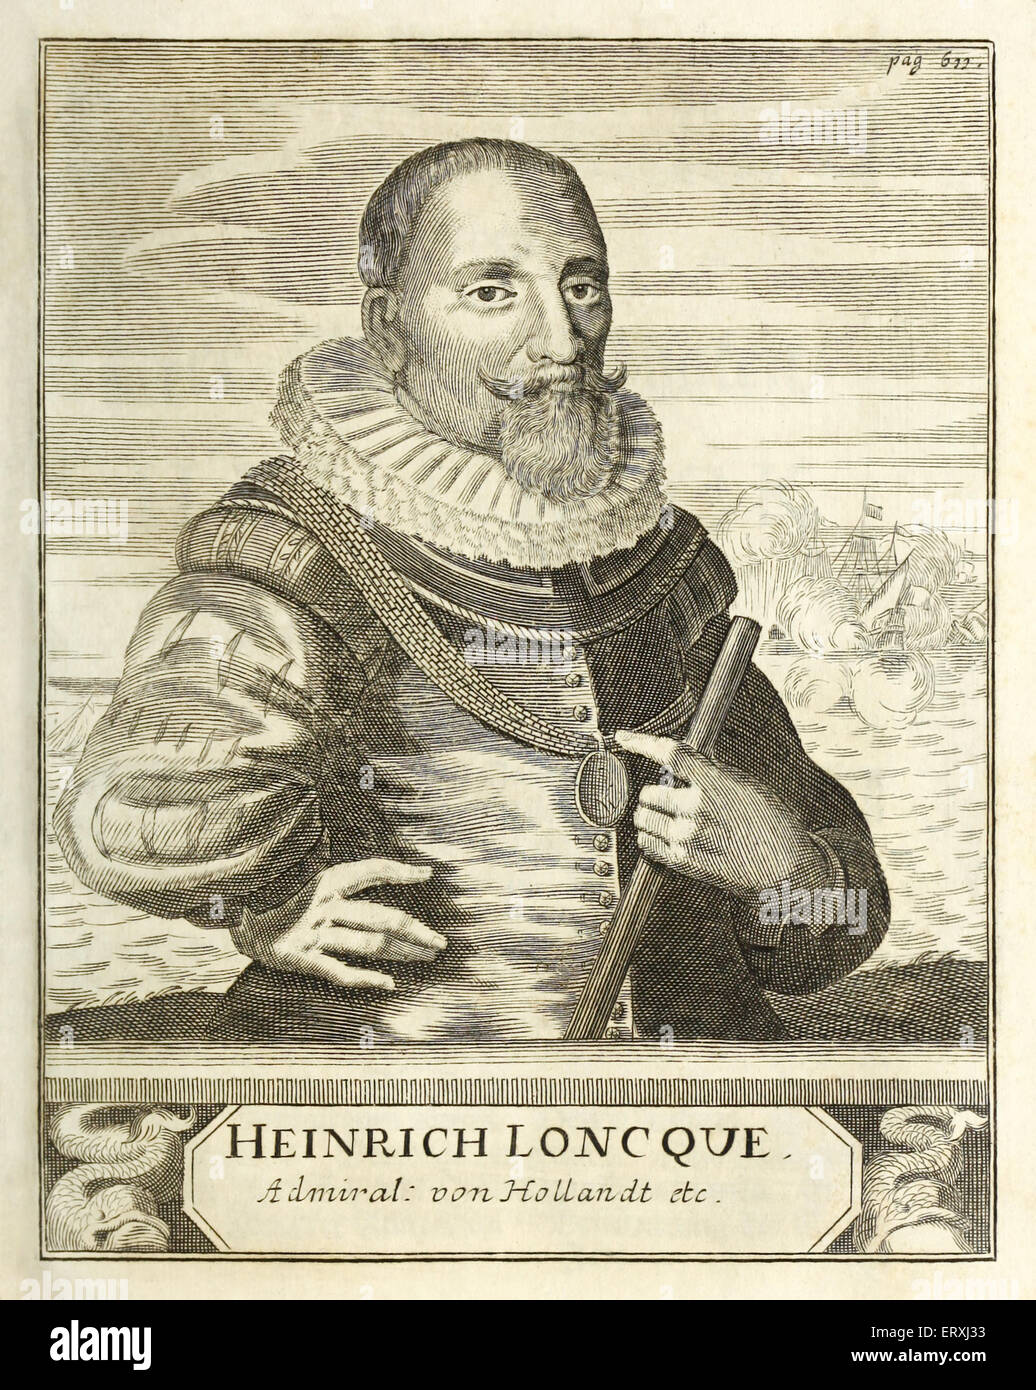 Hendrick Lonck (1568-1634), Dutch naval hero and first Dutch sea captain to reach the New World. Engraving by Herman - Stock Image